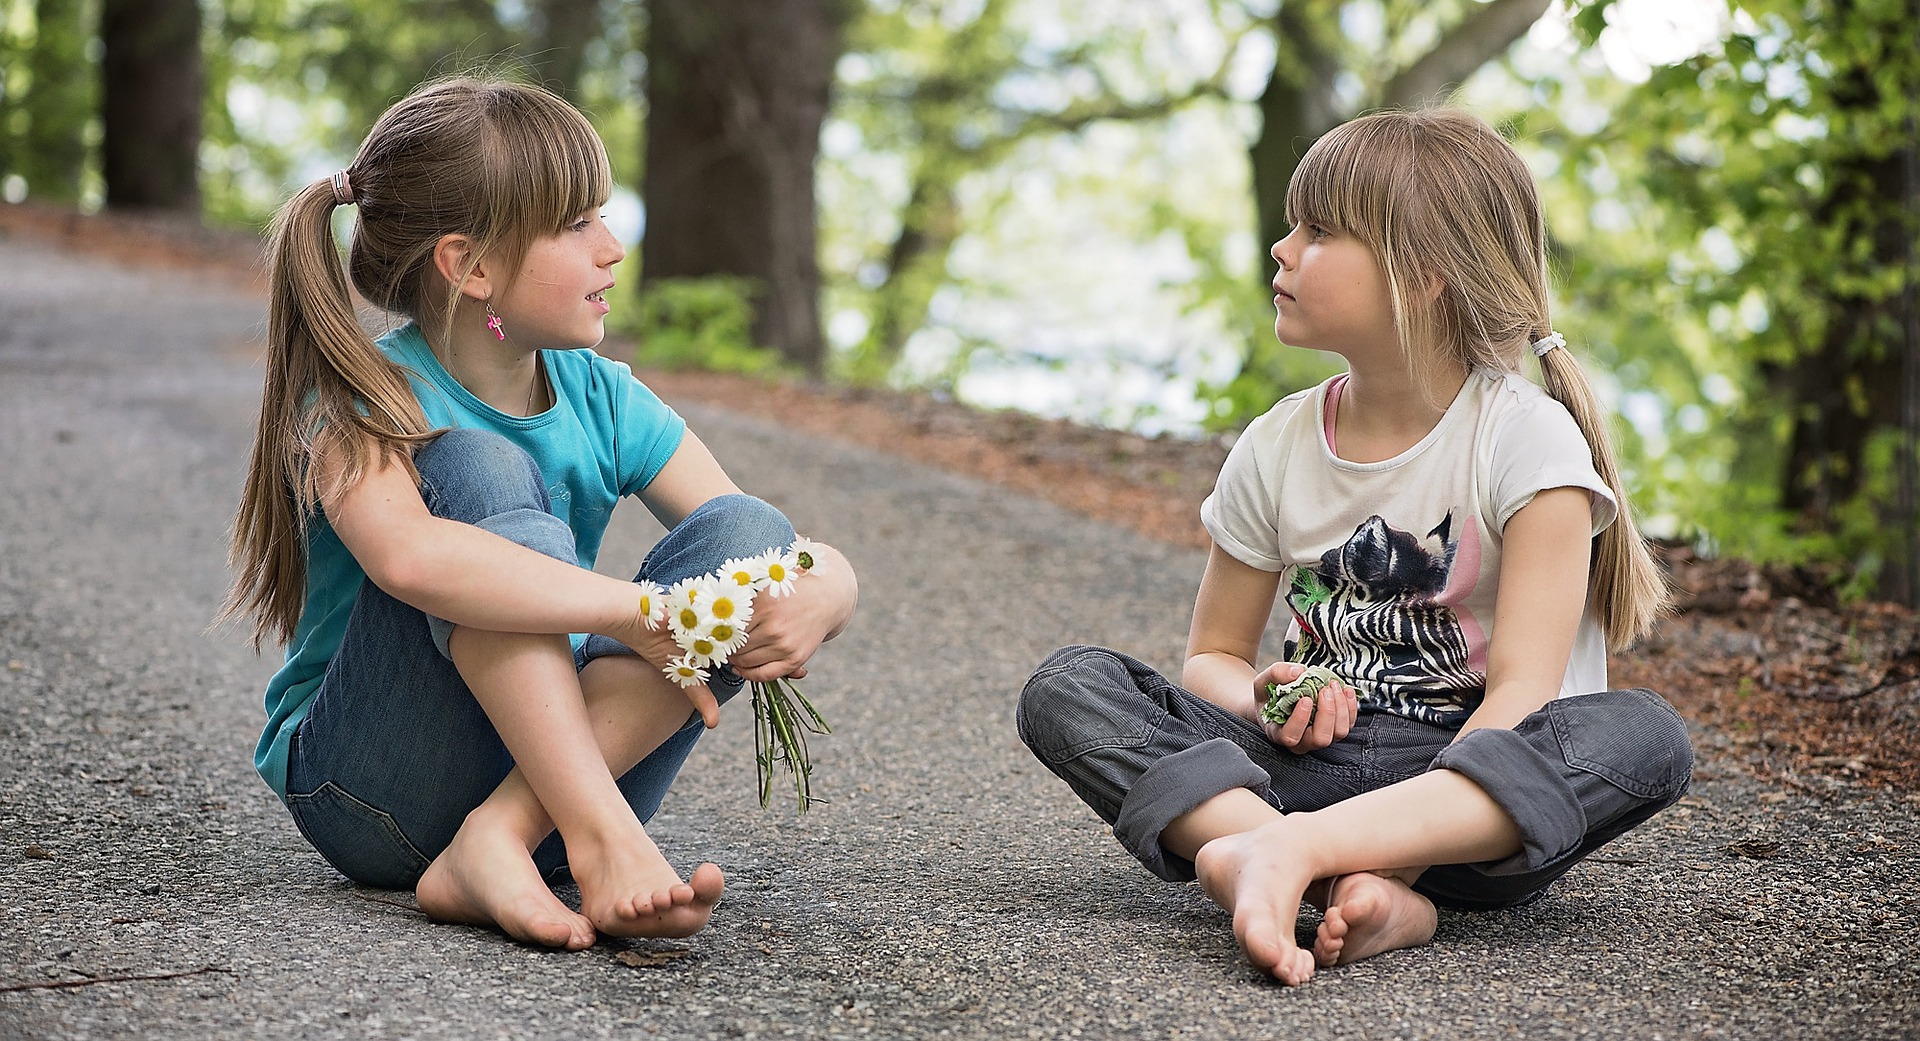 2 girls is seating at the road in the park and having a conversation